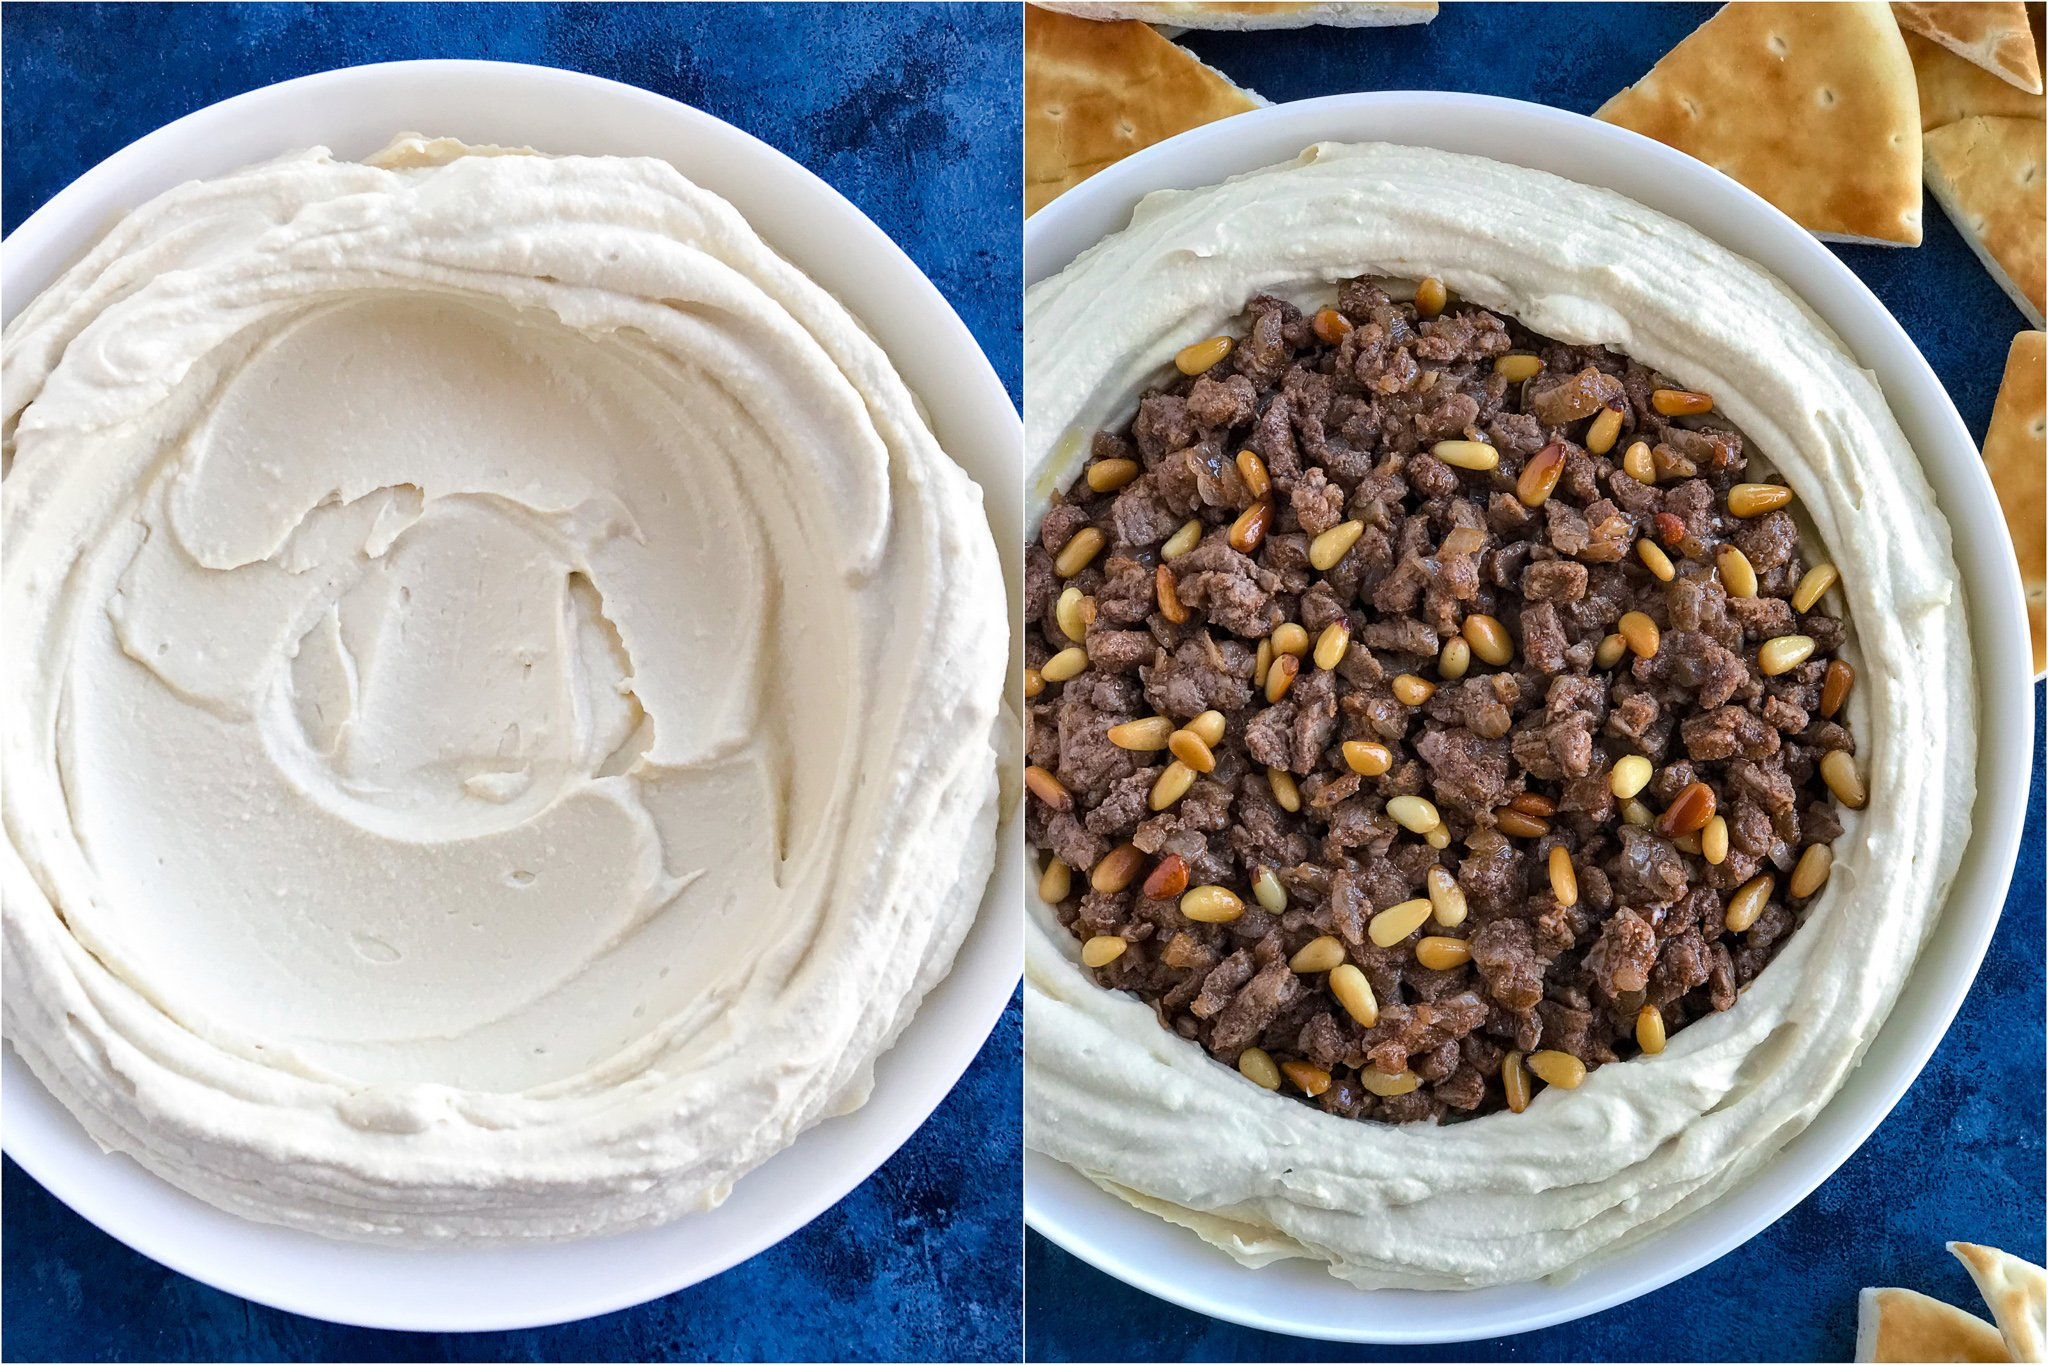 Two side by side photos of Lebanese Hummus in white bowls. The left photo shows plain hummus in the bowl and the right photo shows the hummus topped with spiced meat.